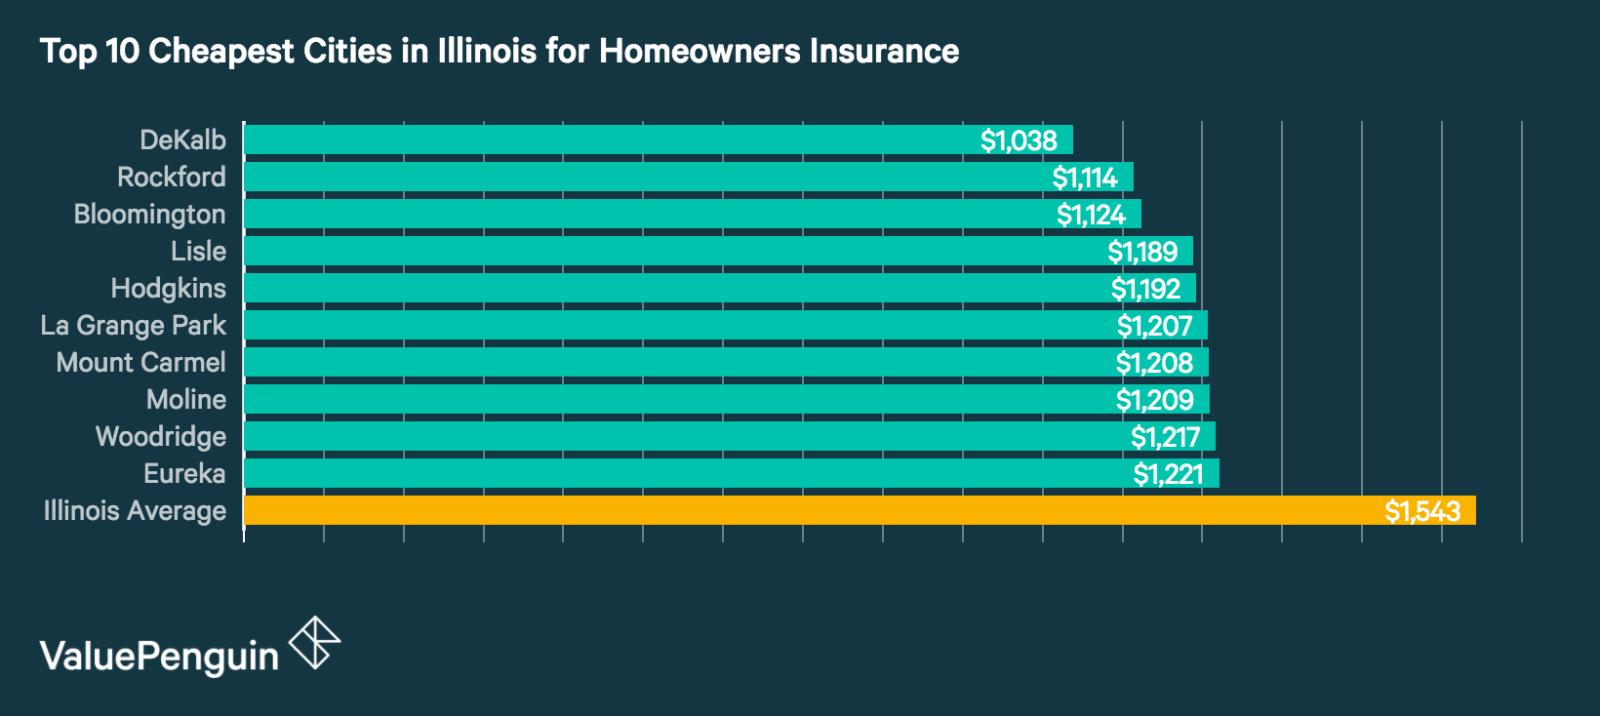 Beau Top 10 Cheapest Cities In Illinois For Homeowners Insurance